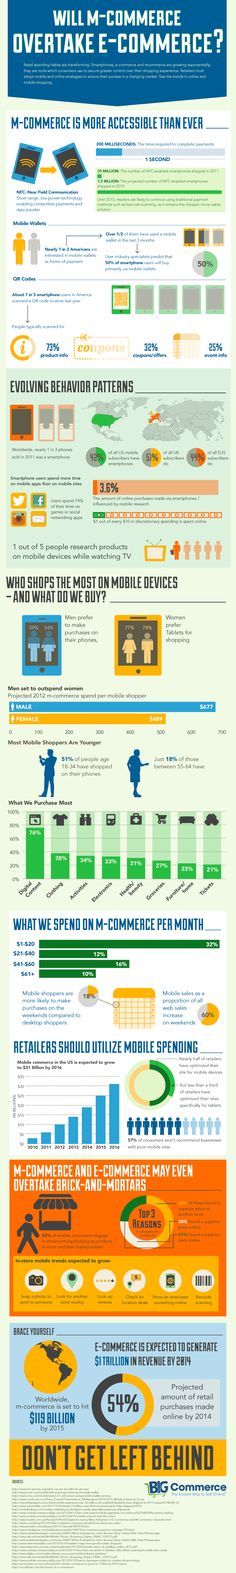 Will m-commerce overtake other payment options? [infographic]